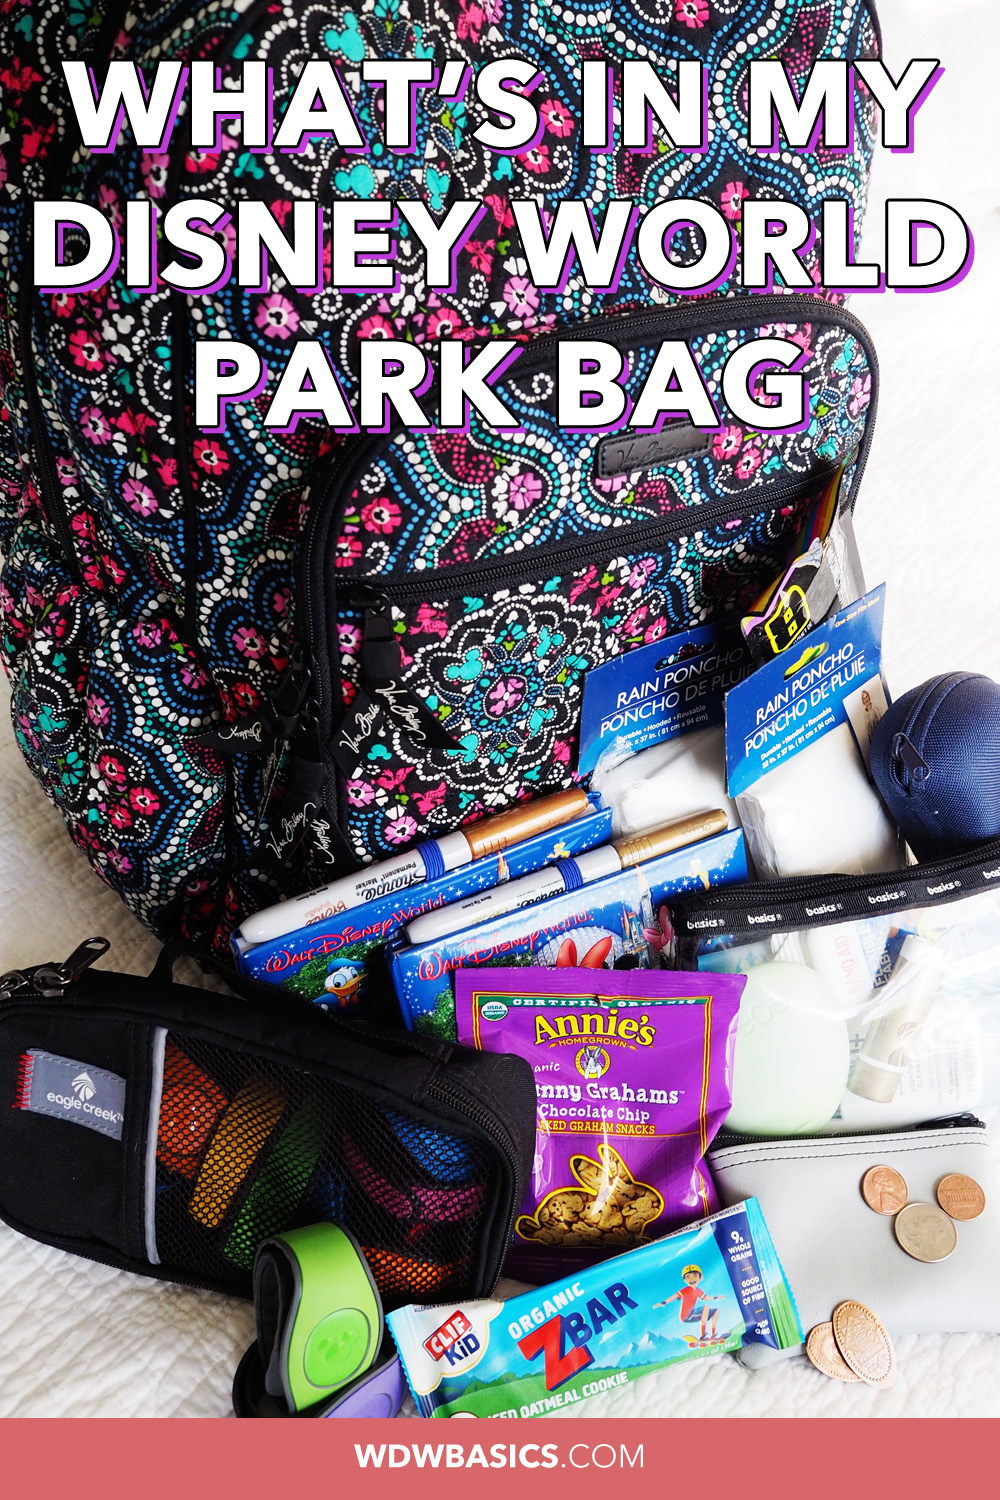 What's in my Disney World park bag